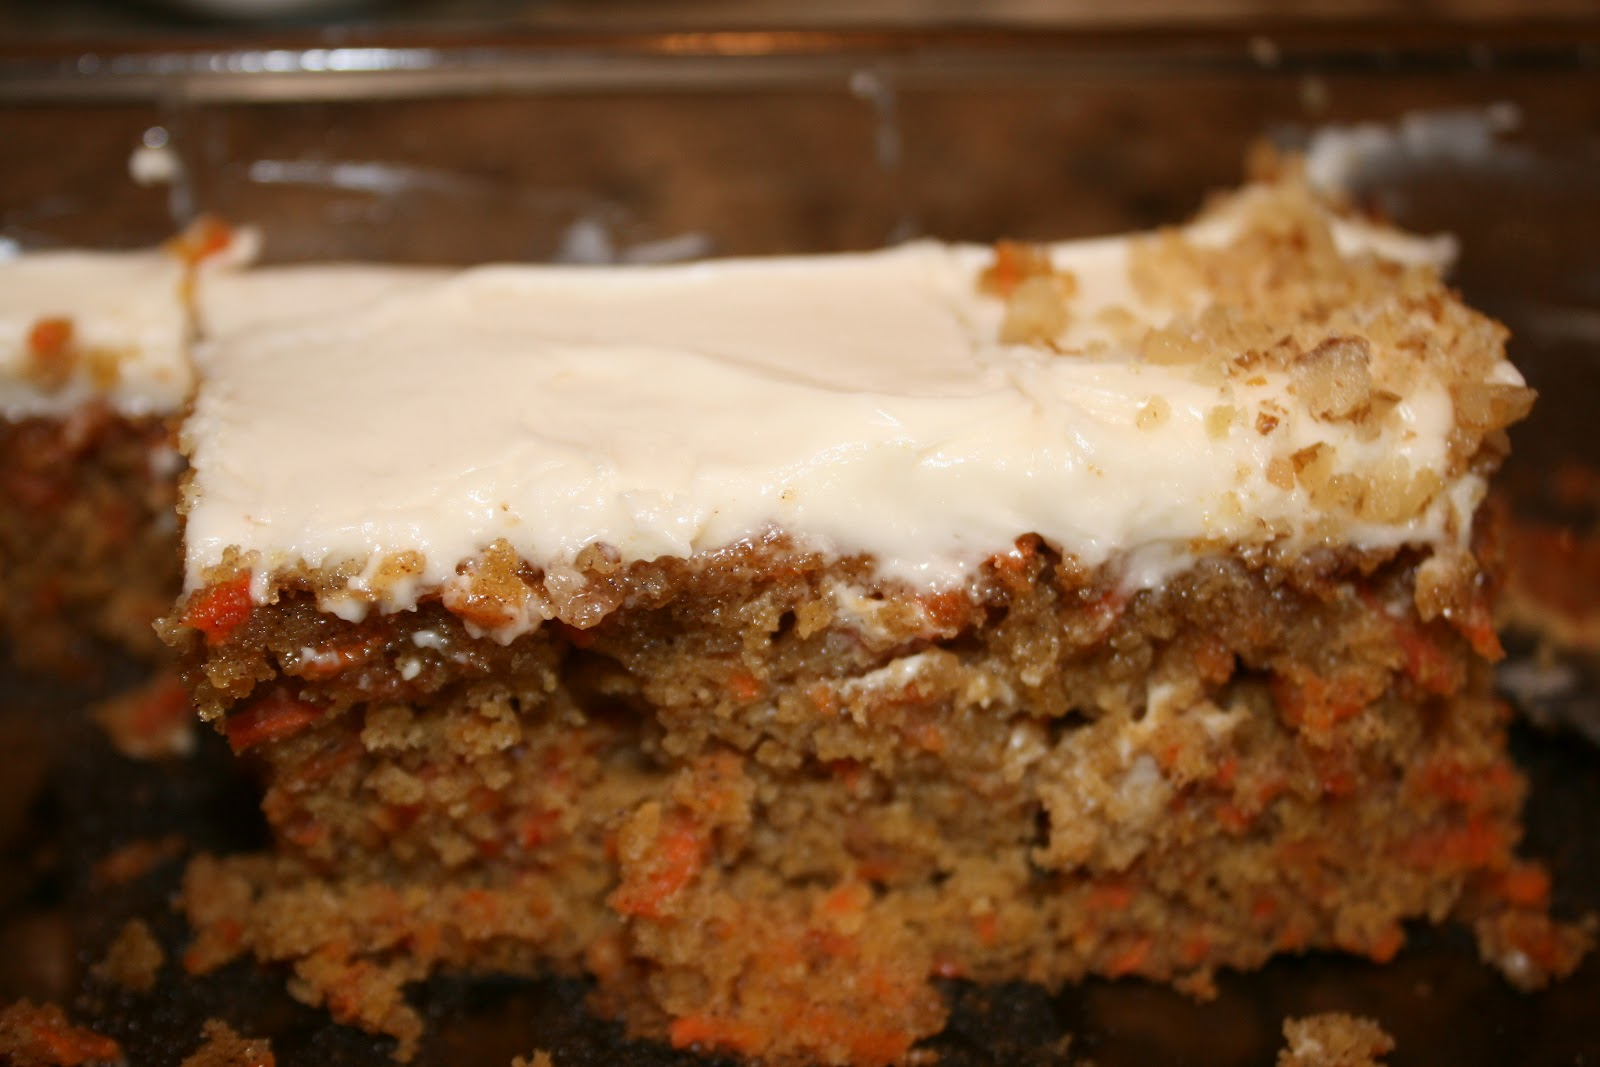 everything to entertain: Carrot Sheet Cake with Cream Cheese Frosting